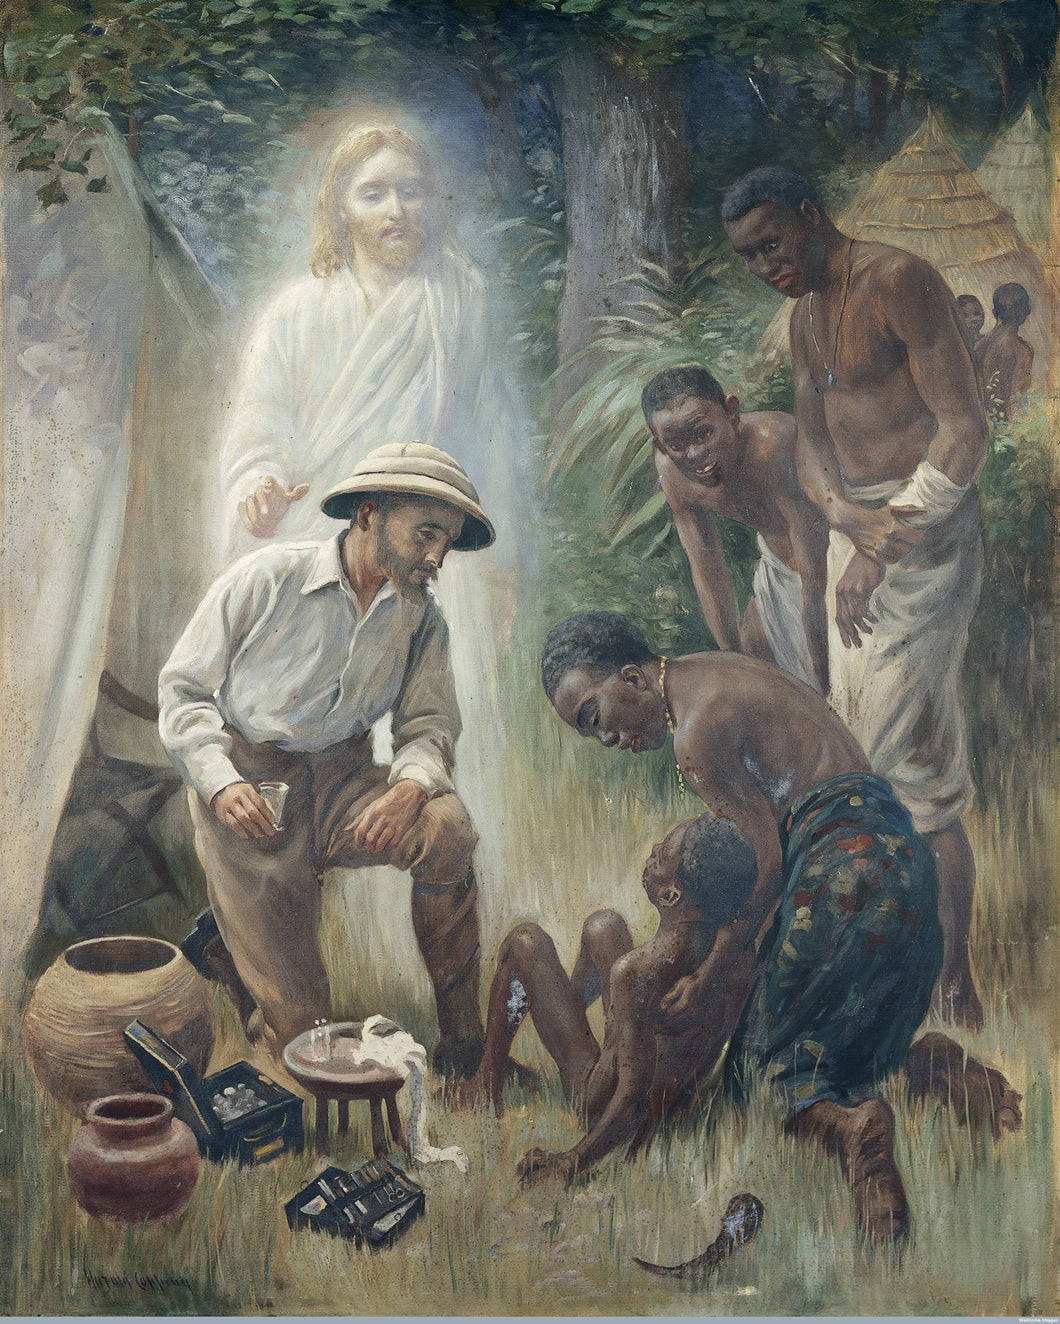 Harold Clopping, A Medical Missionary